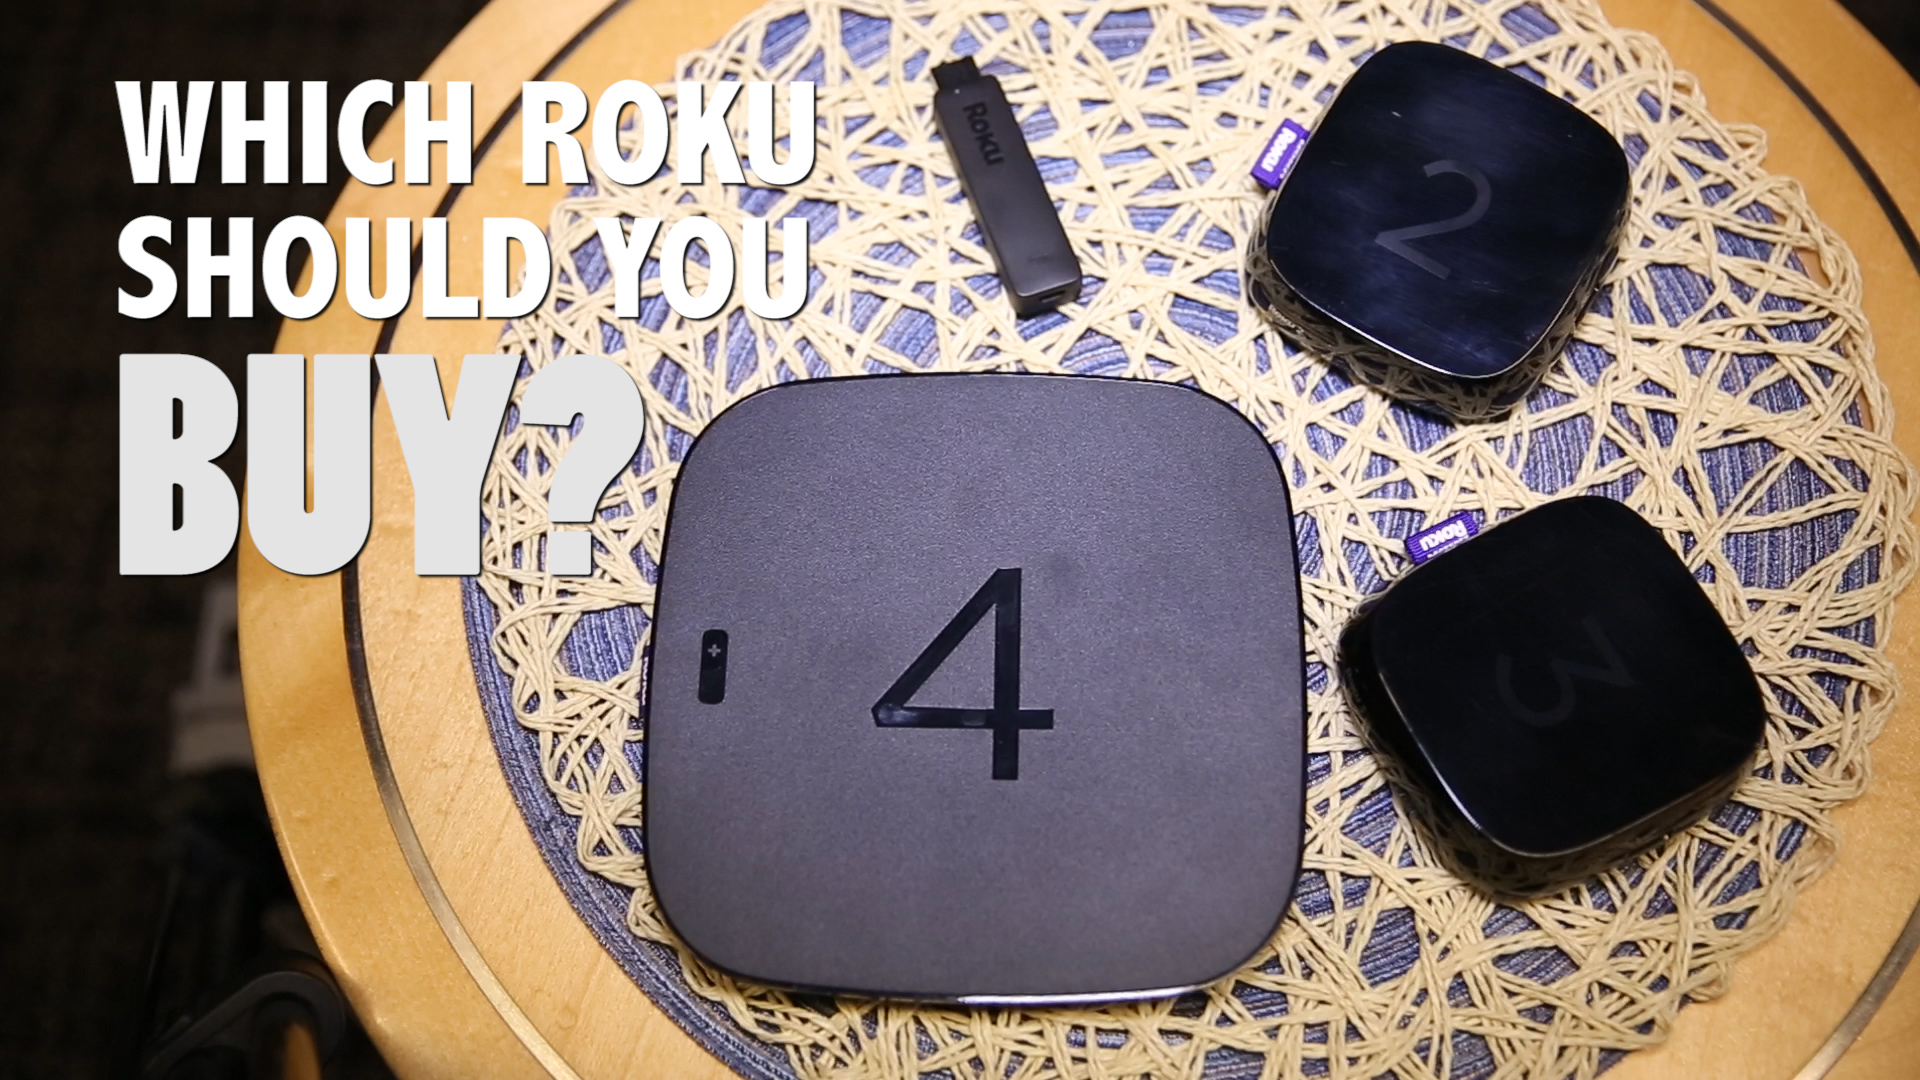 Video: Roku makes the best streamers. But which one should I buy?